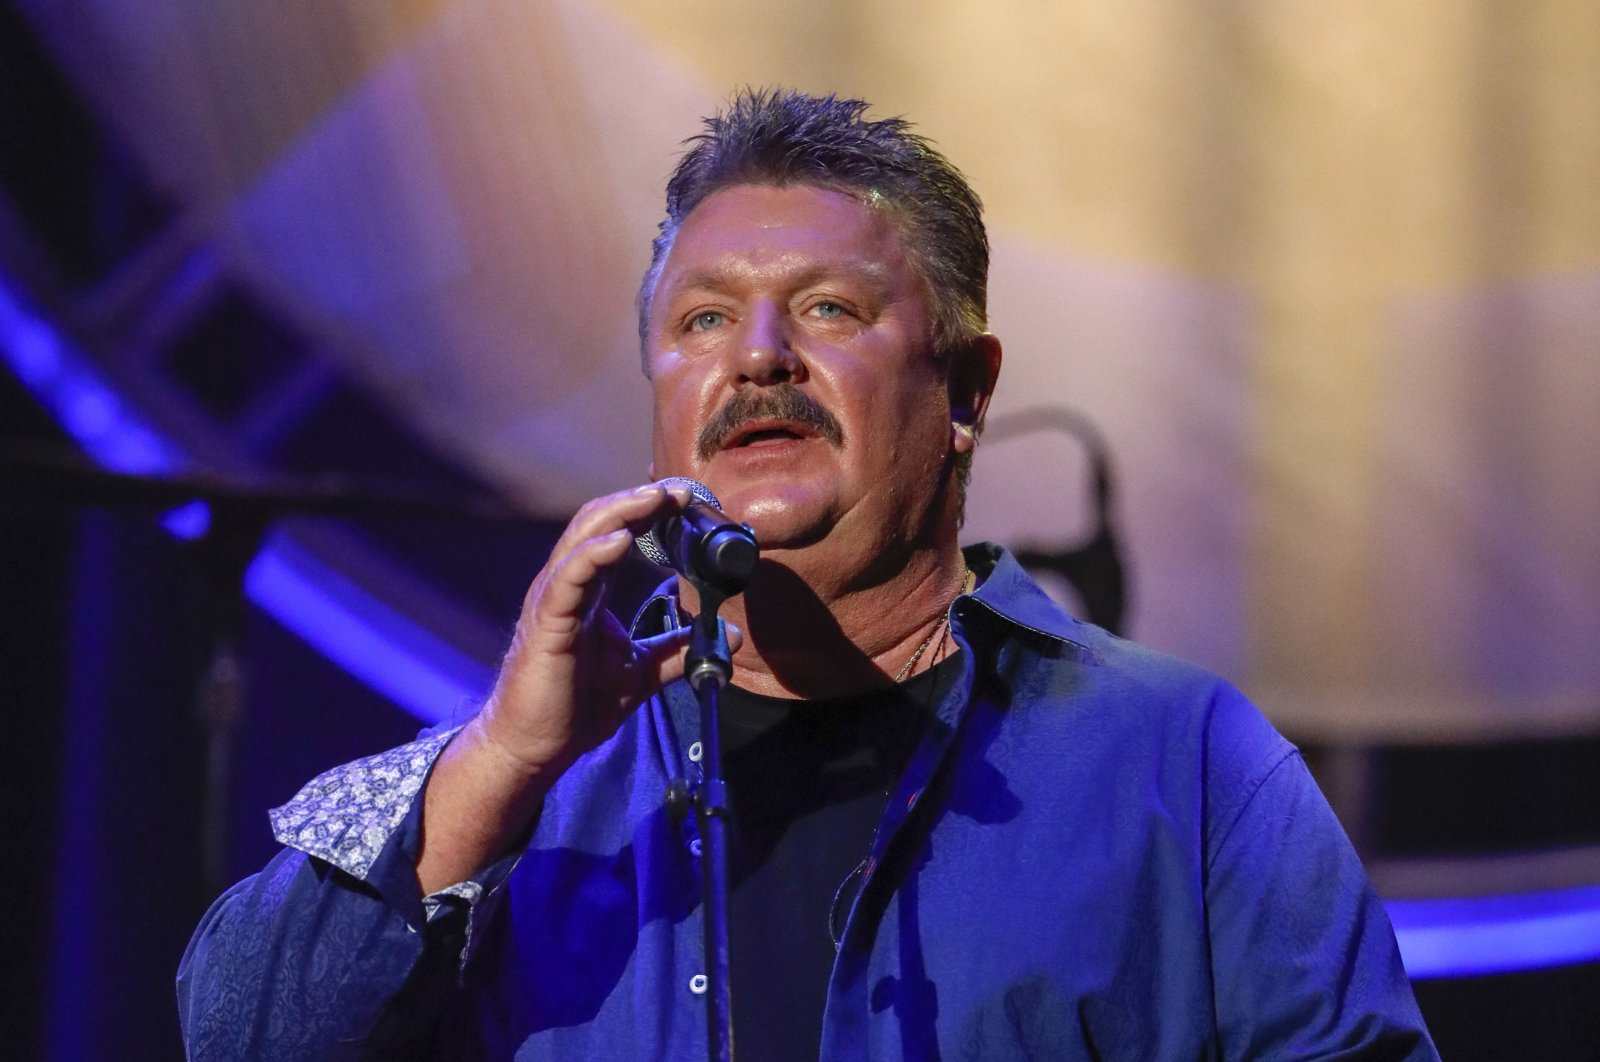 This file photo dated Aug. 22, 2018, shows Joe Diffie performing at the 12th annual ACM Honors in Nashville, Tenn. (AP Photo)